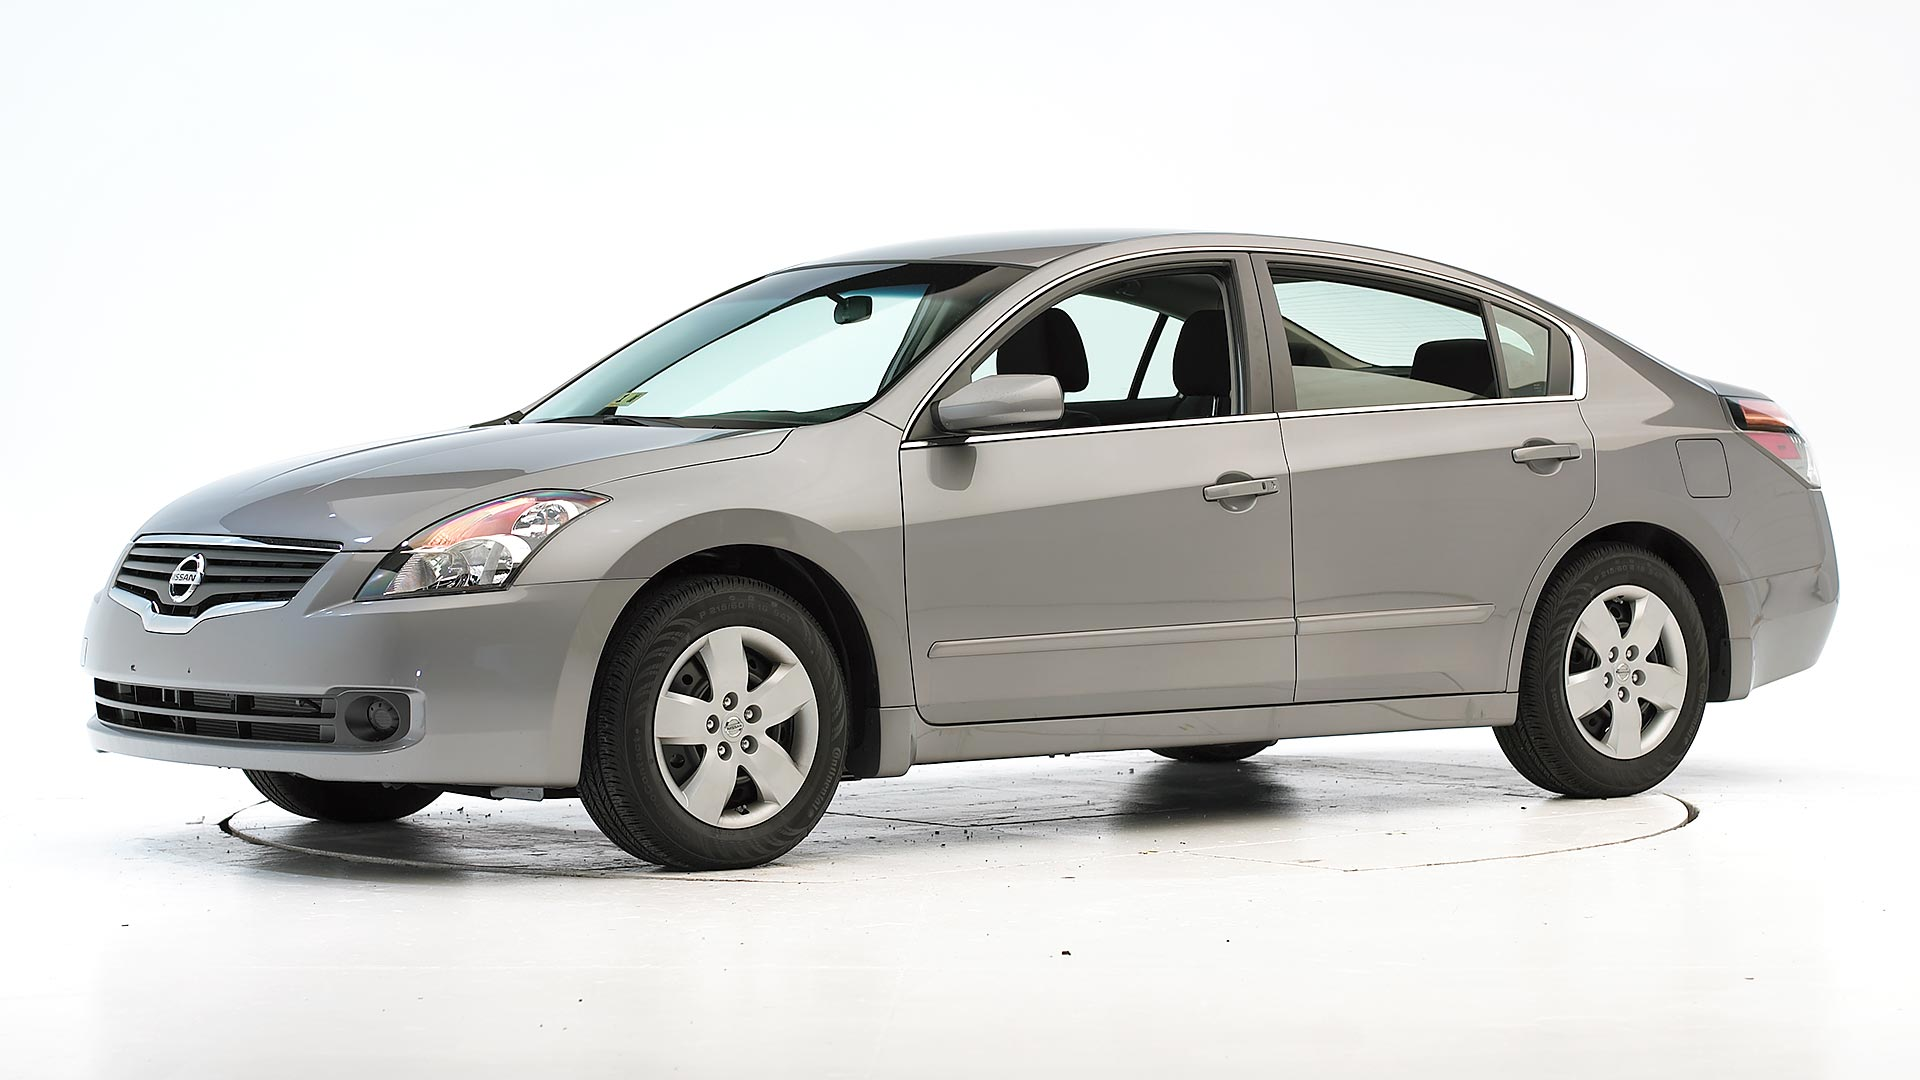 2007 Nissan Altima 4-door sedan